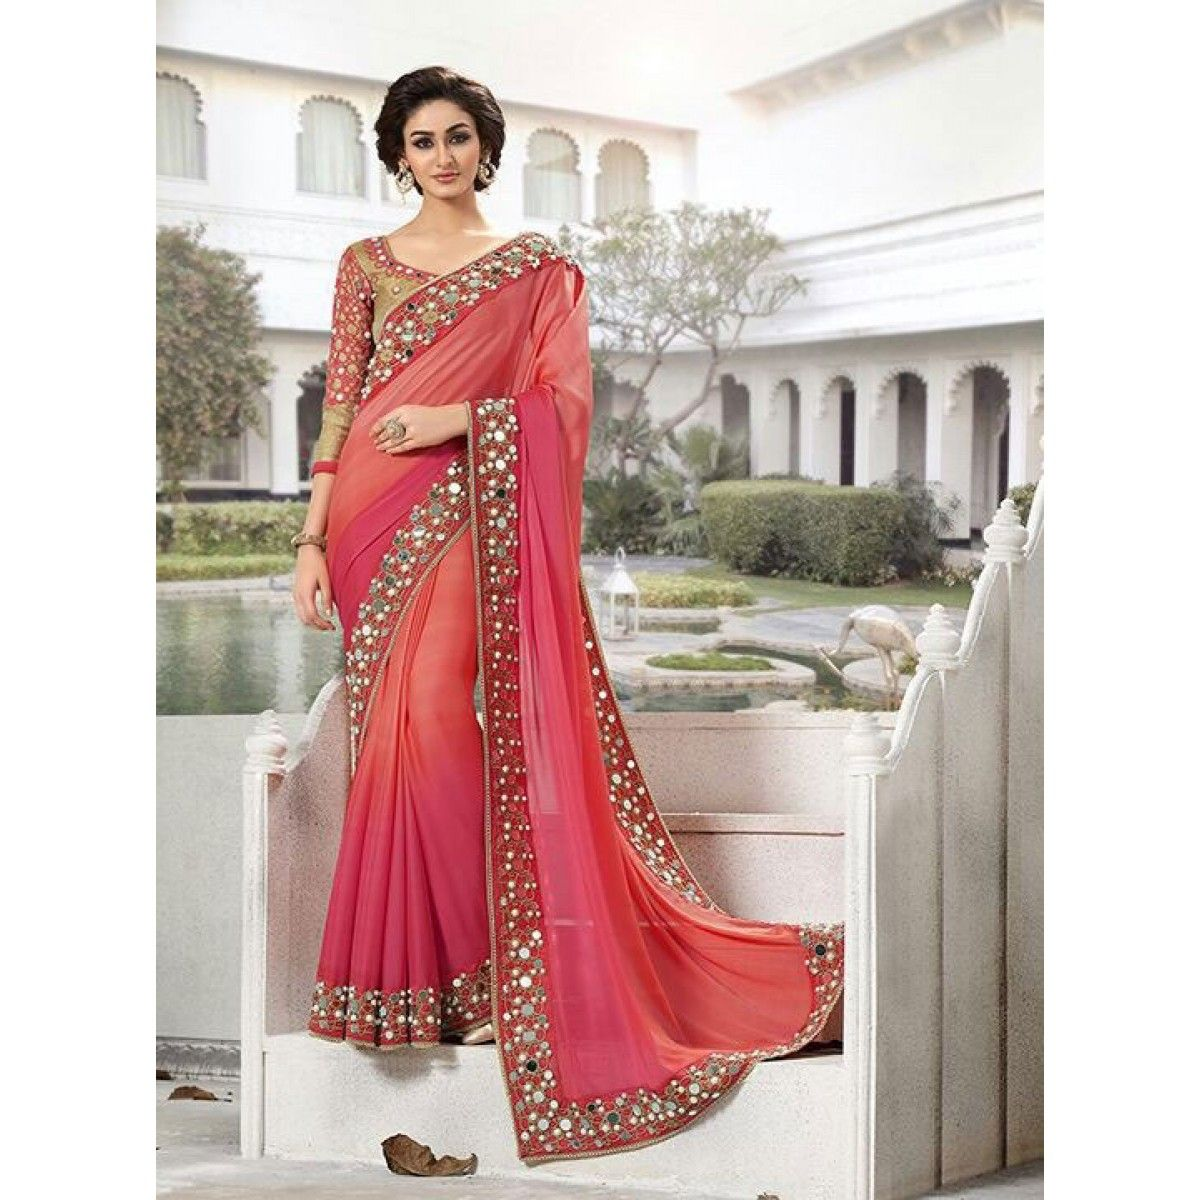 bridal wedding saree collection with price, wedding ...